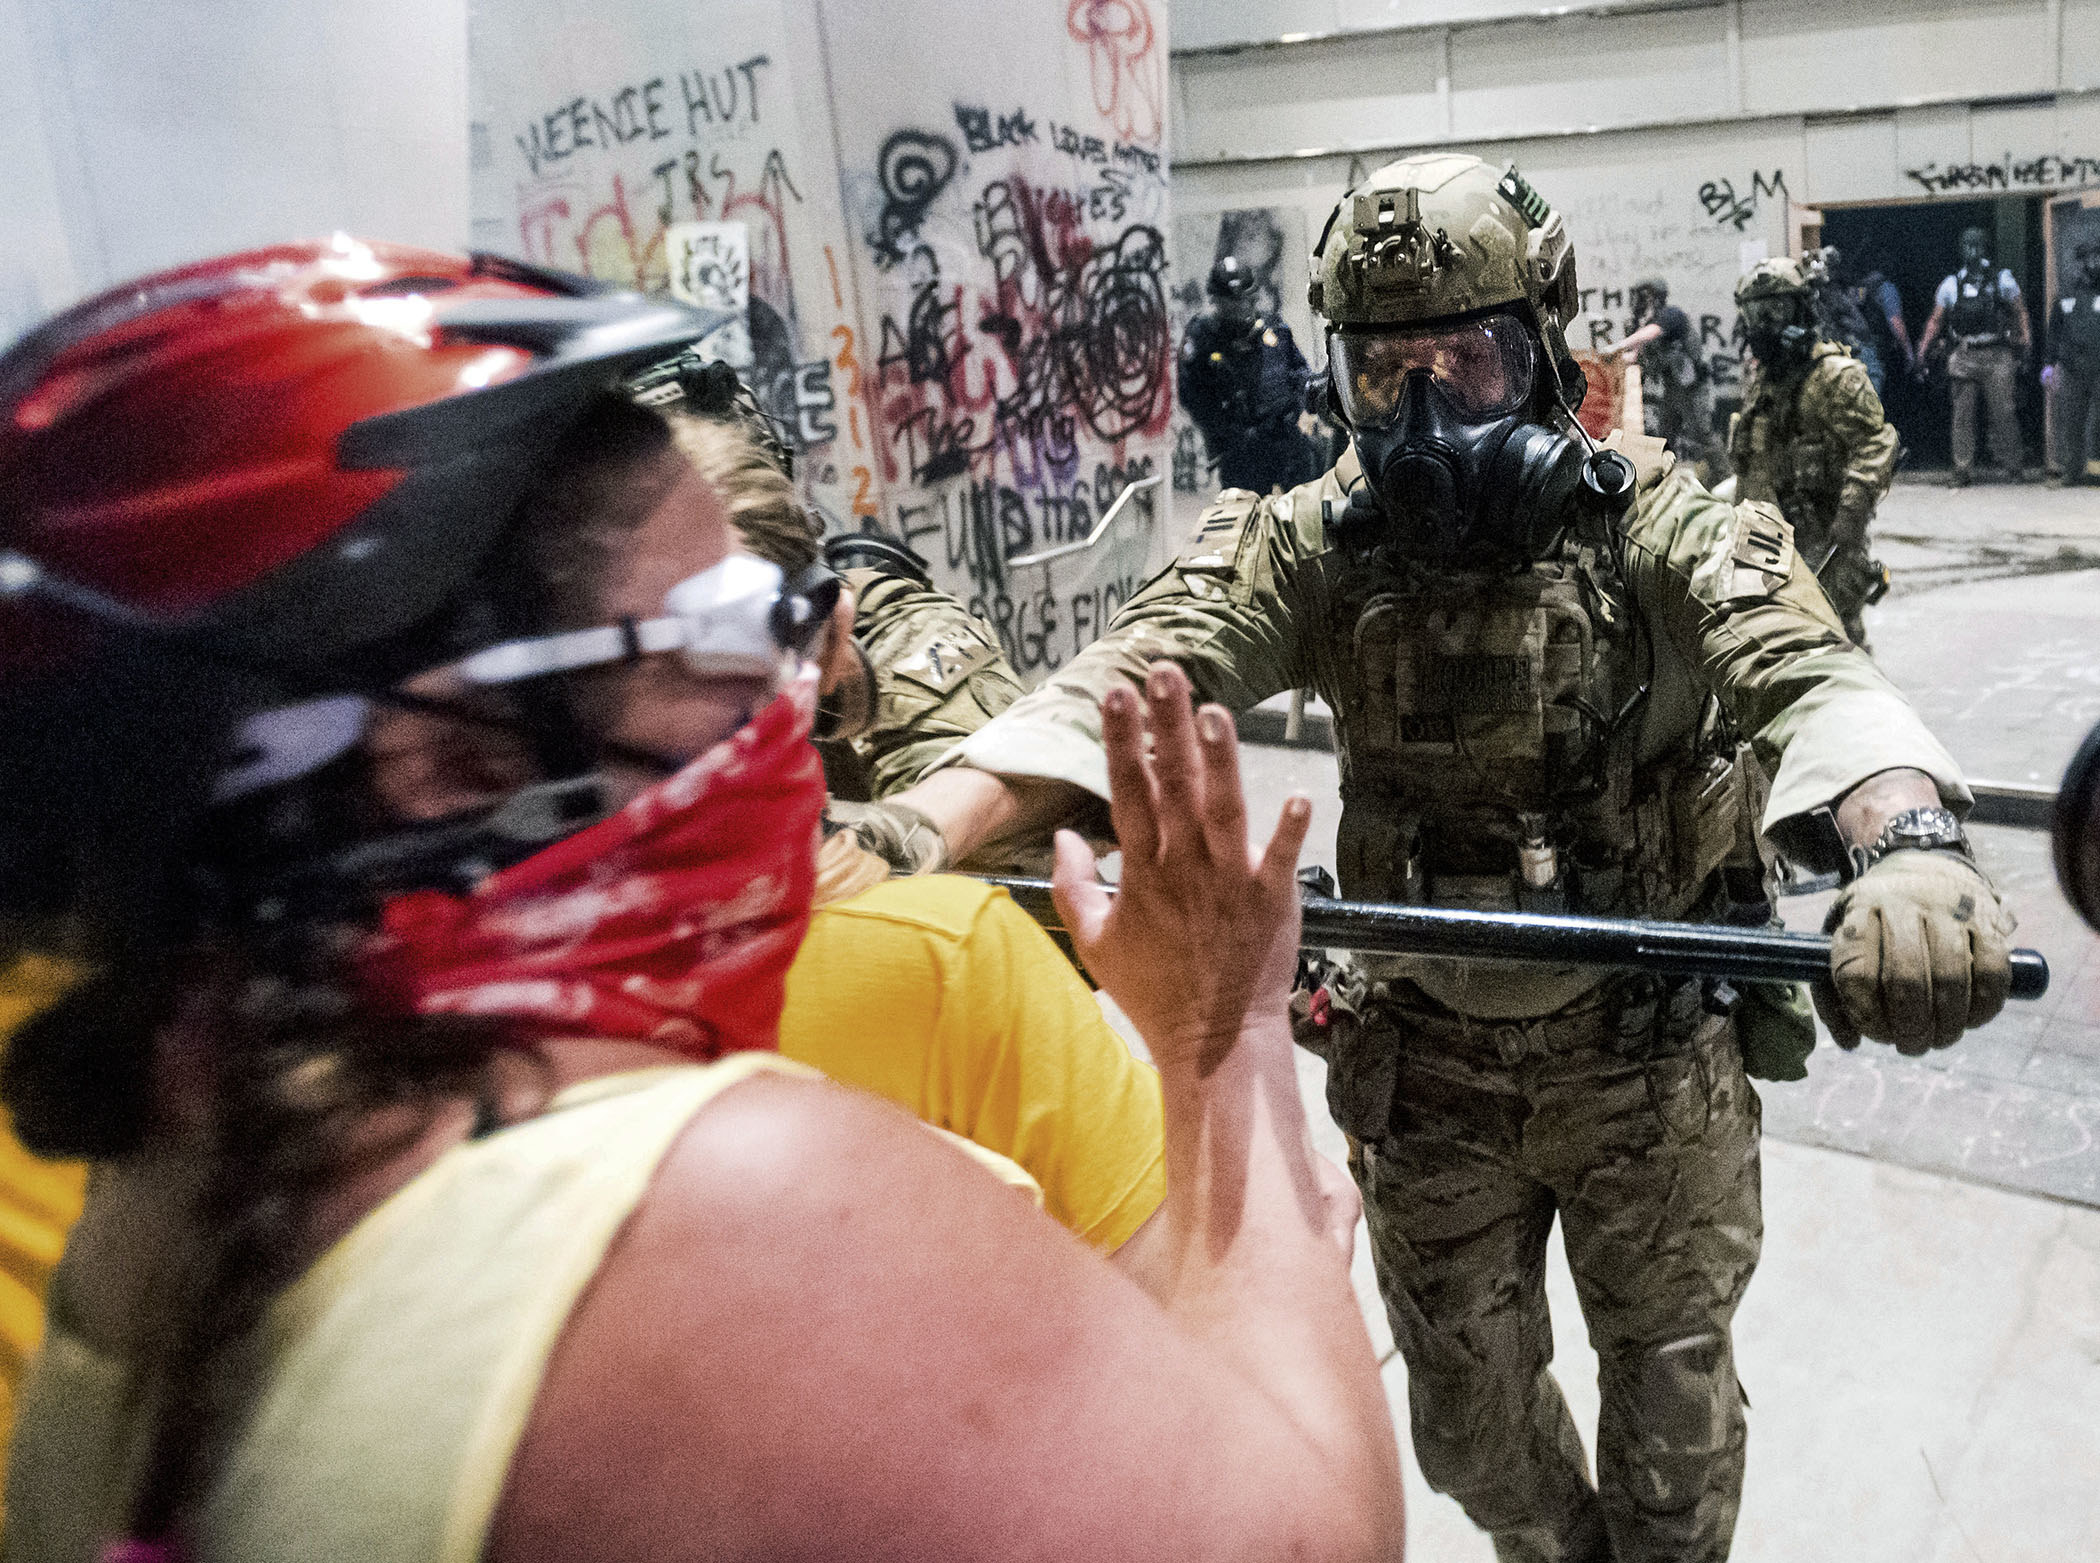 A federal officer, dressed in camouflage with a gas mask on, uses a baton to push against a demonstrator, who wears a red helmet and red bandana over her face